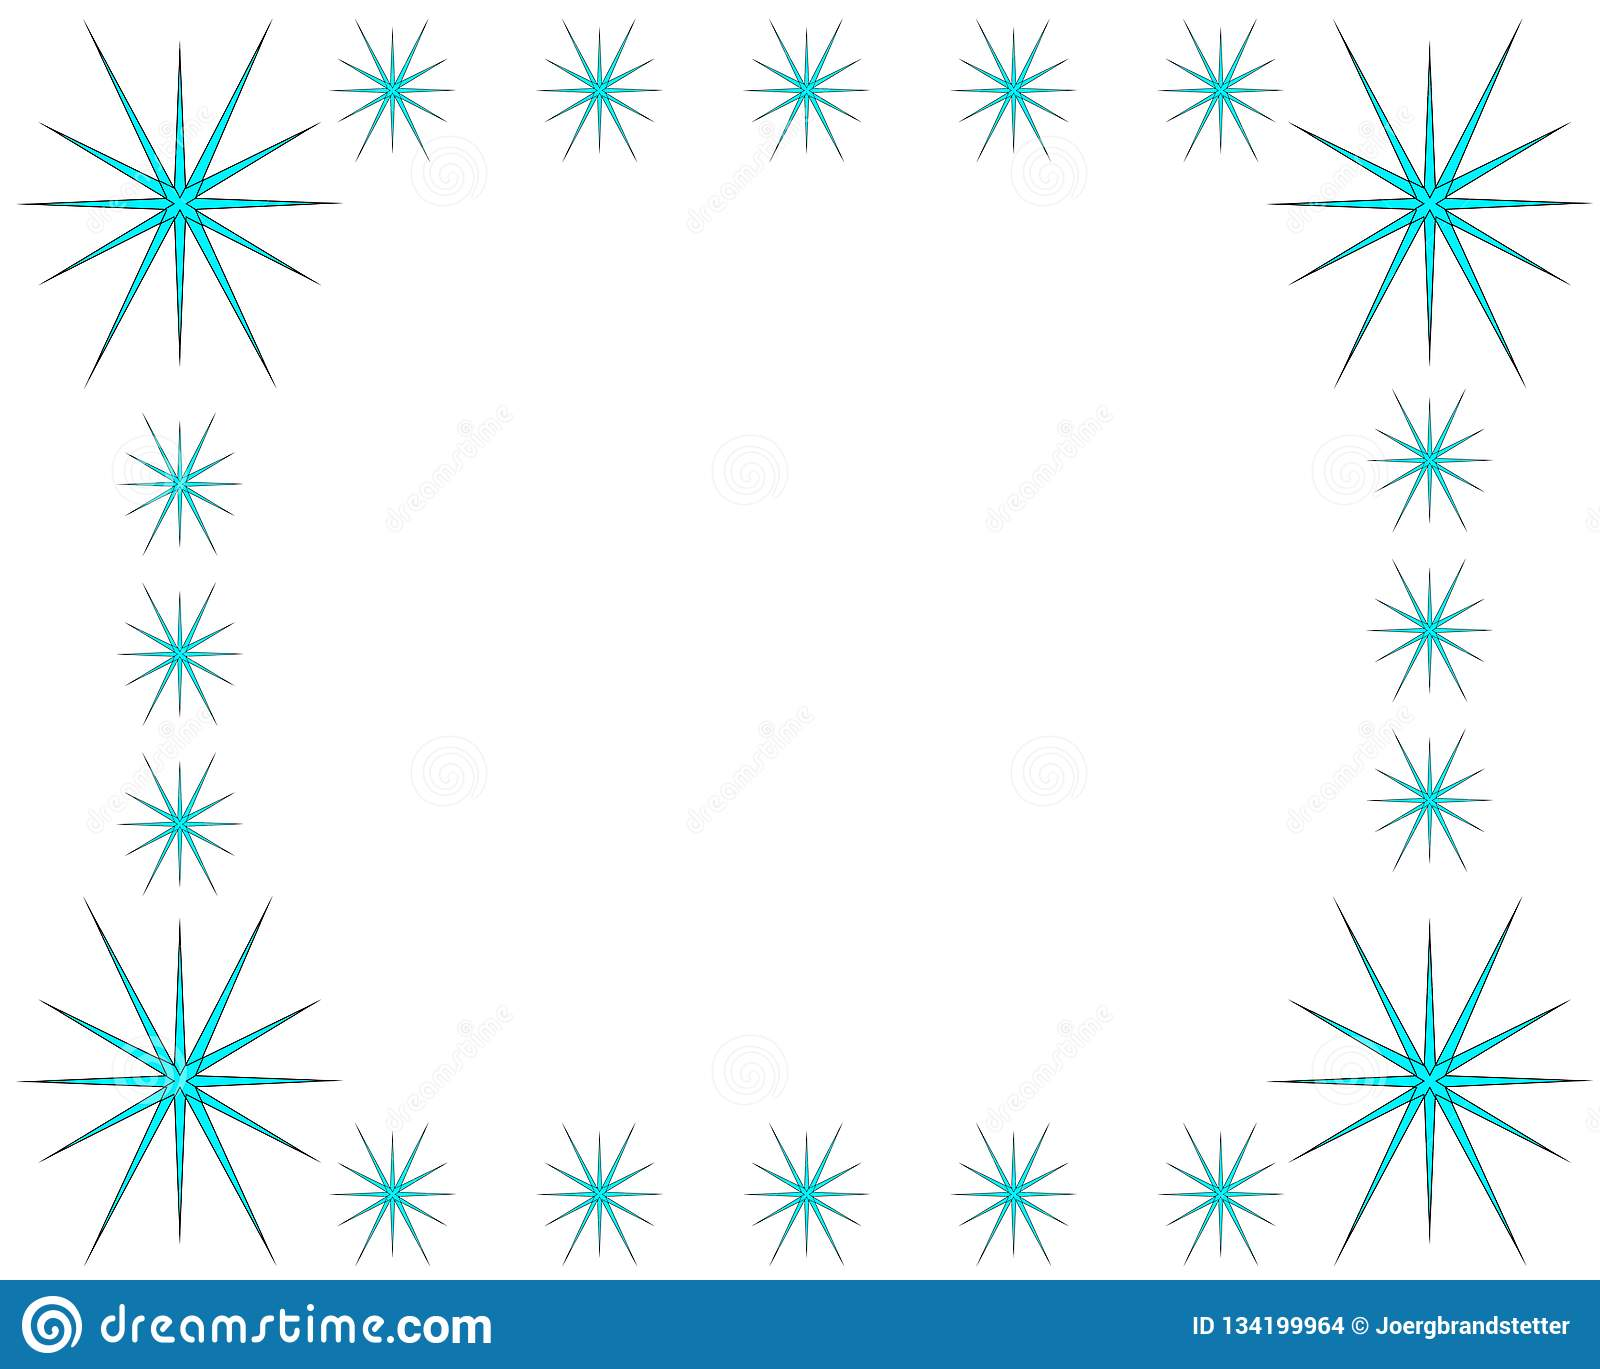 953bea7d8a06 Ice Crystal Frame On White Background With Copy Space Stock Vector ...